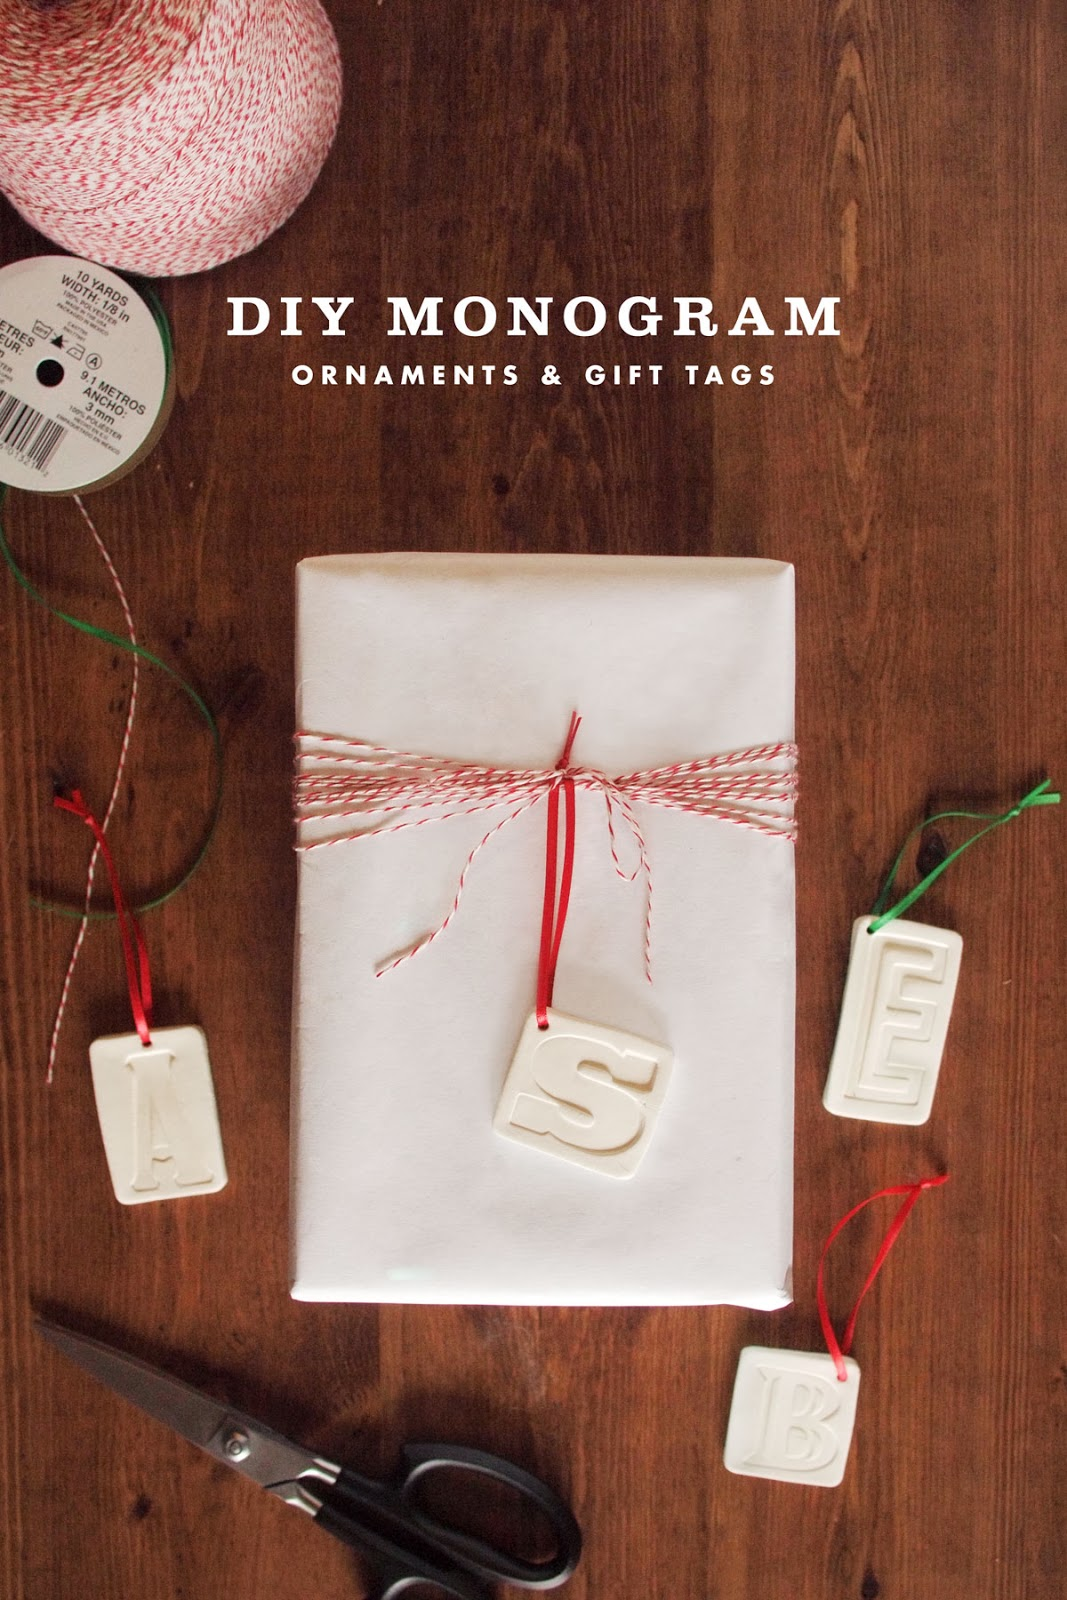 Diy clay monogram ornaments gift tags jamie bartlett for Diy monogram gifts